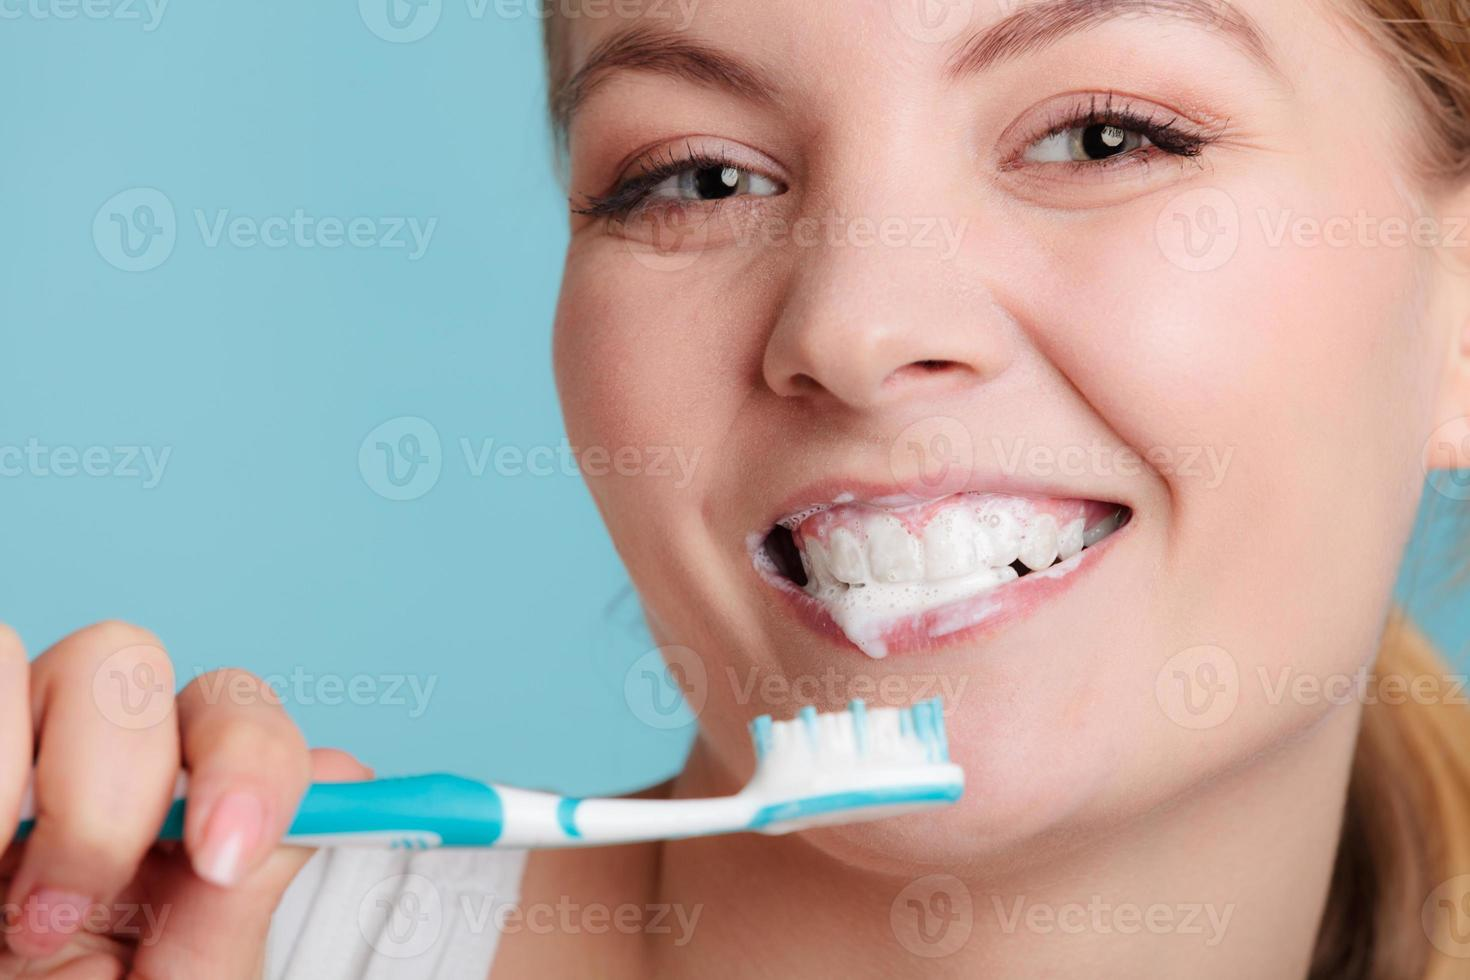 woman with toothbrush brushing cleaning teeth photo